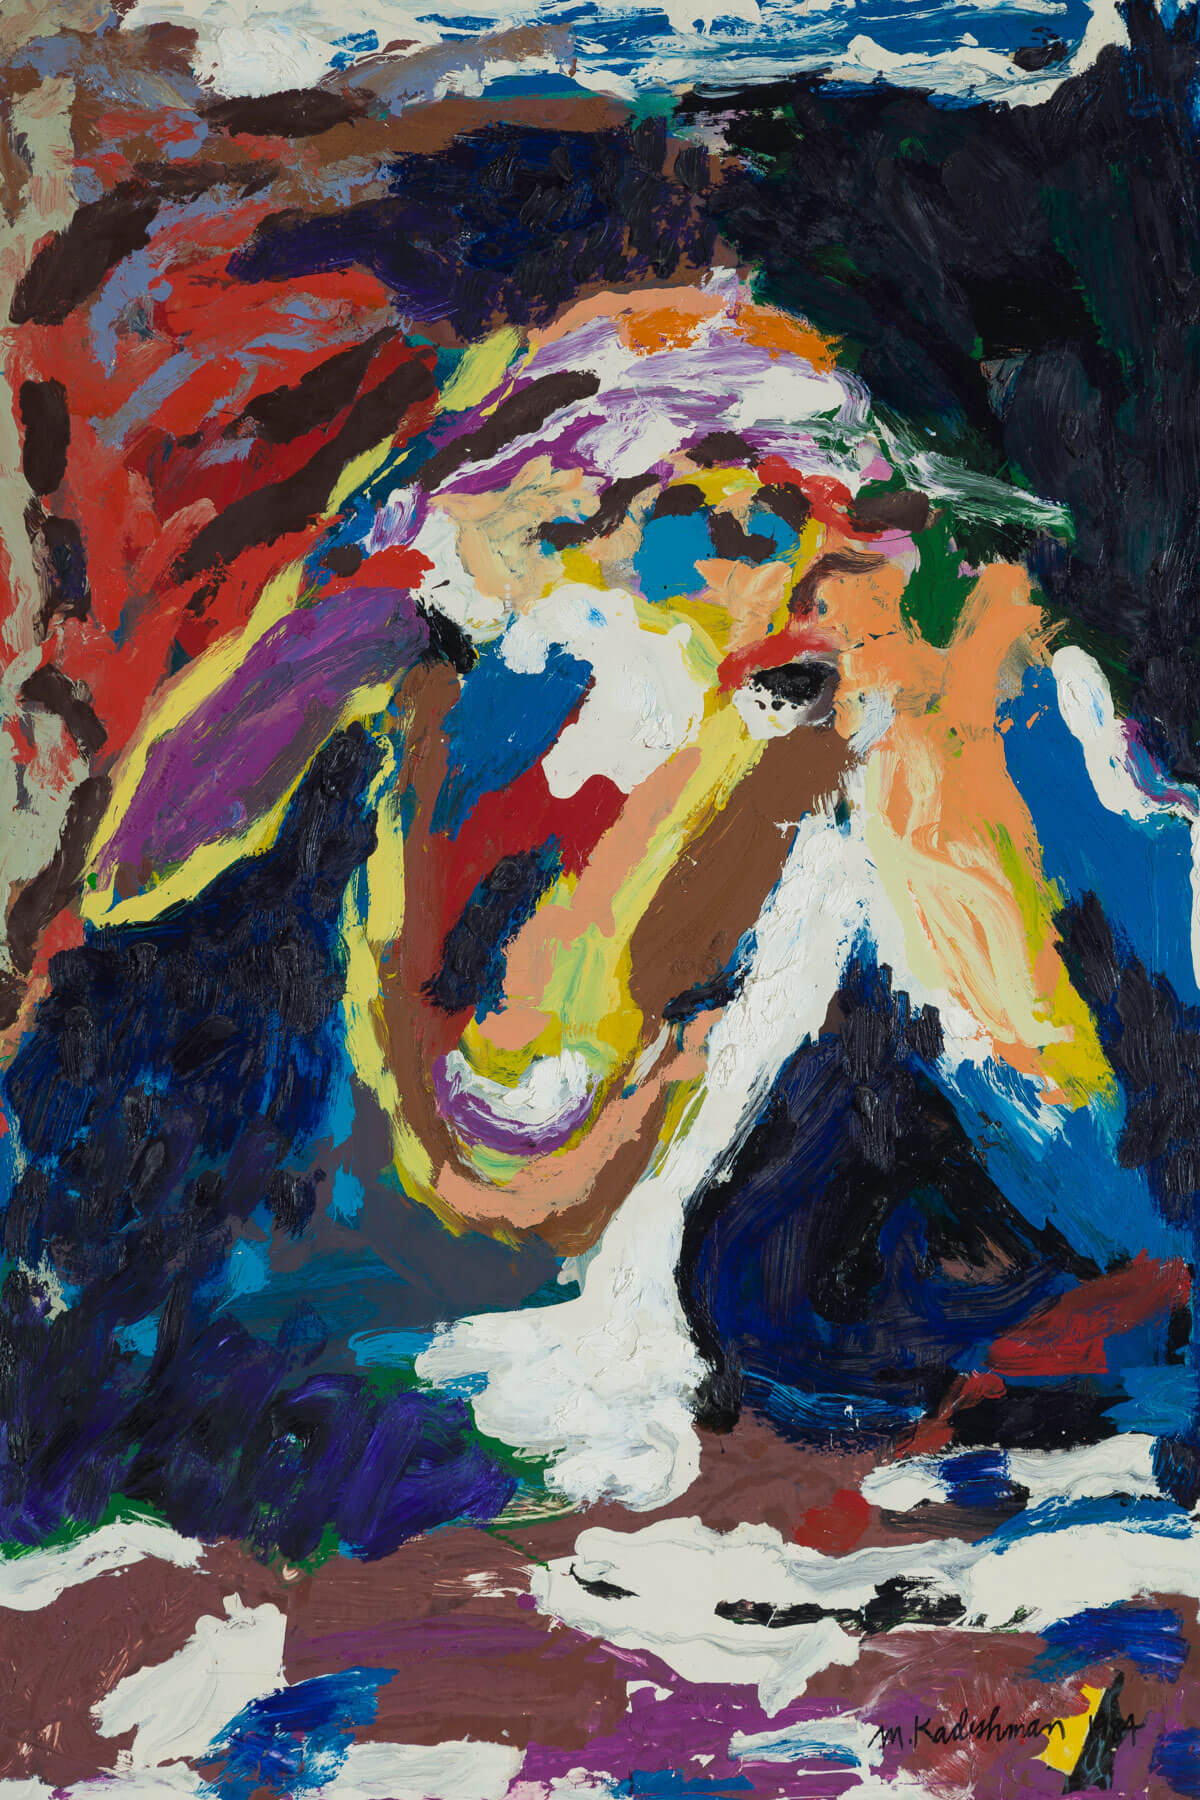 161. Abstract Sheep's Head by Menashe Kadishman (1984)